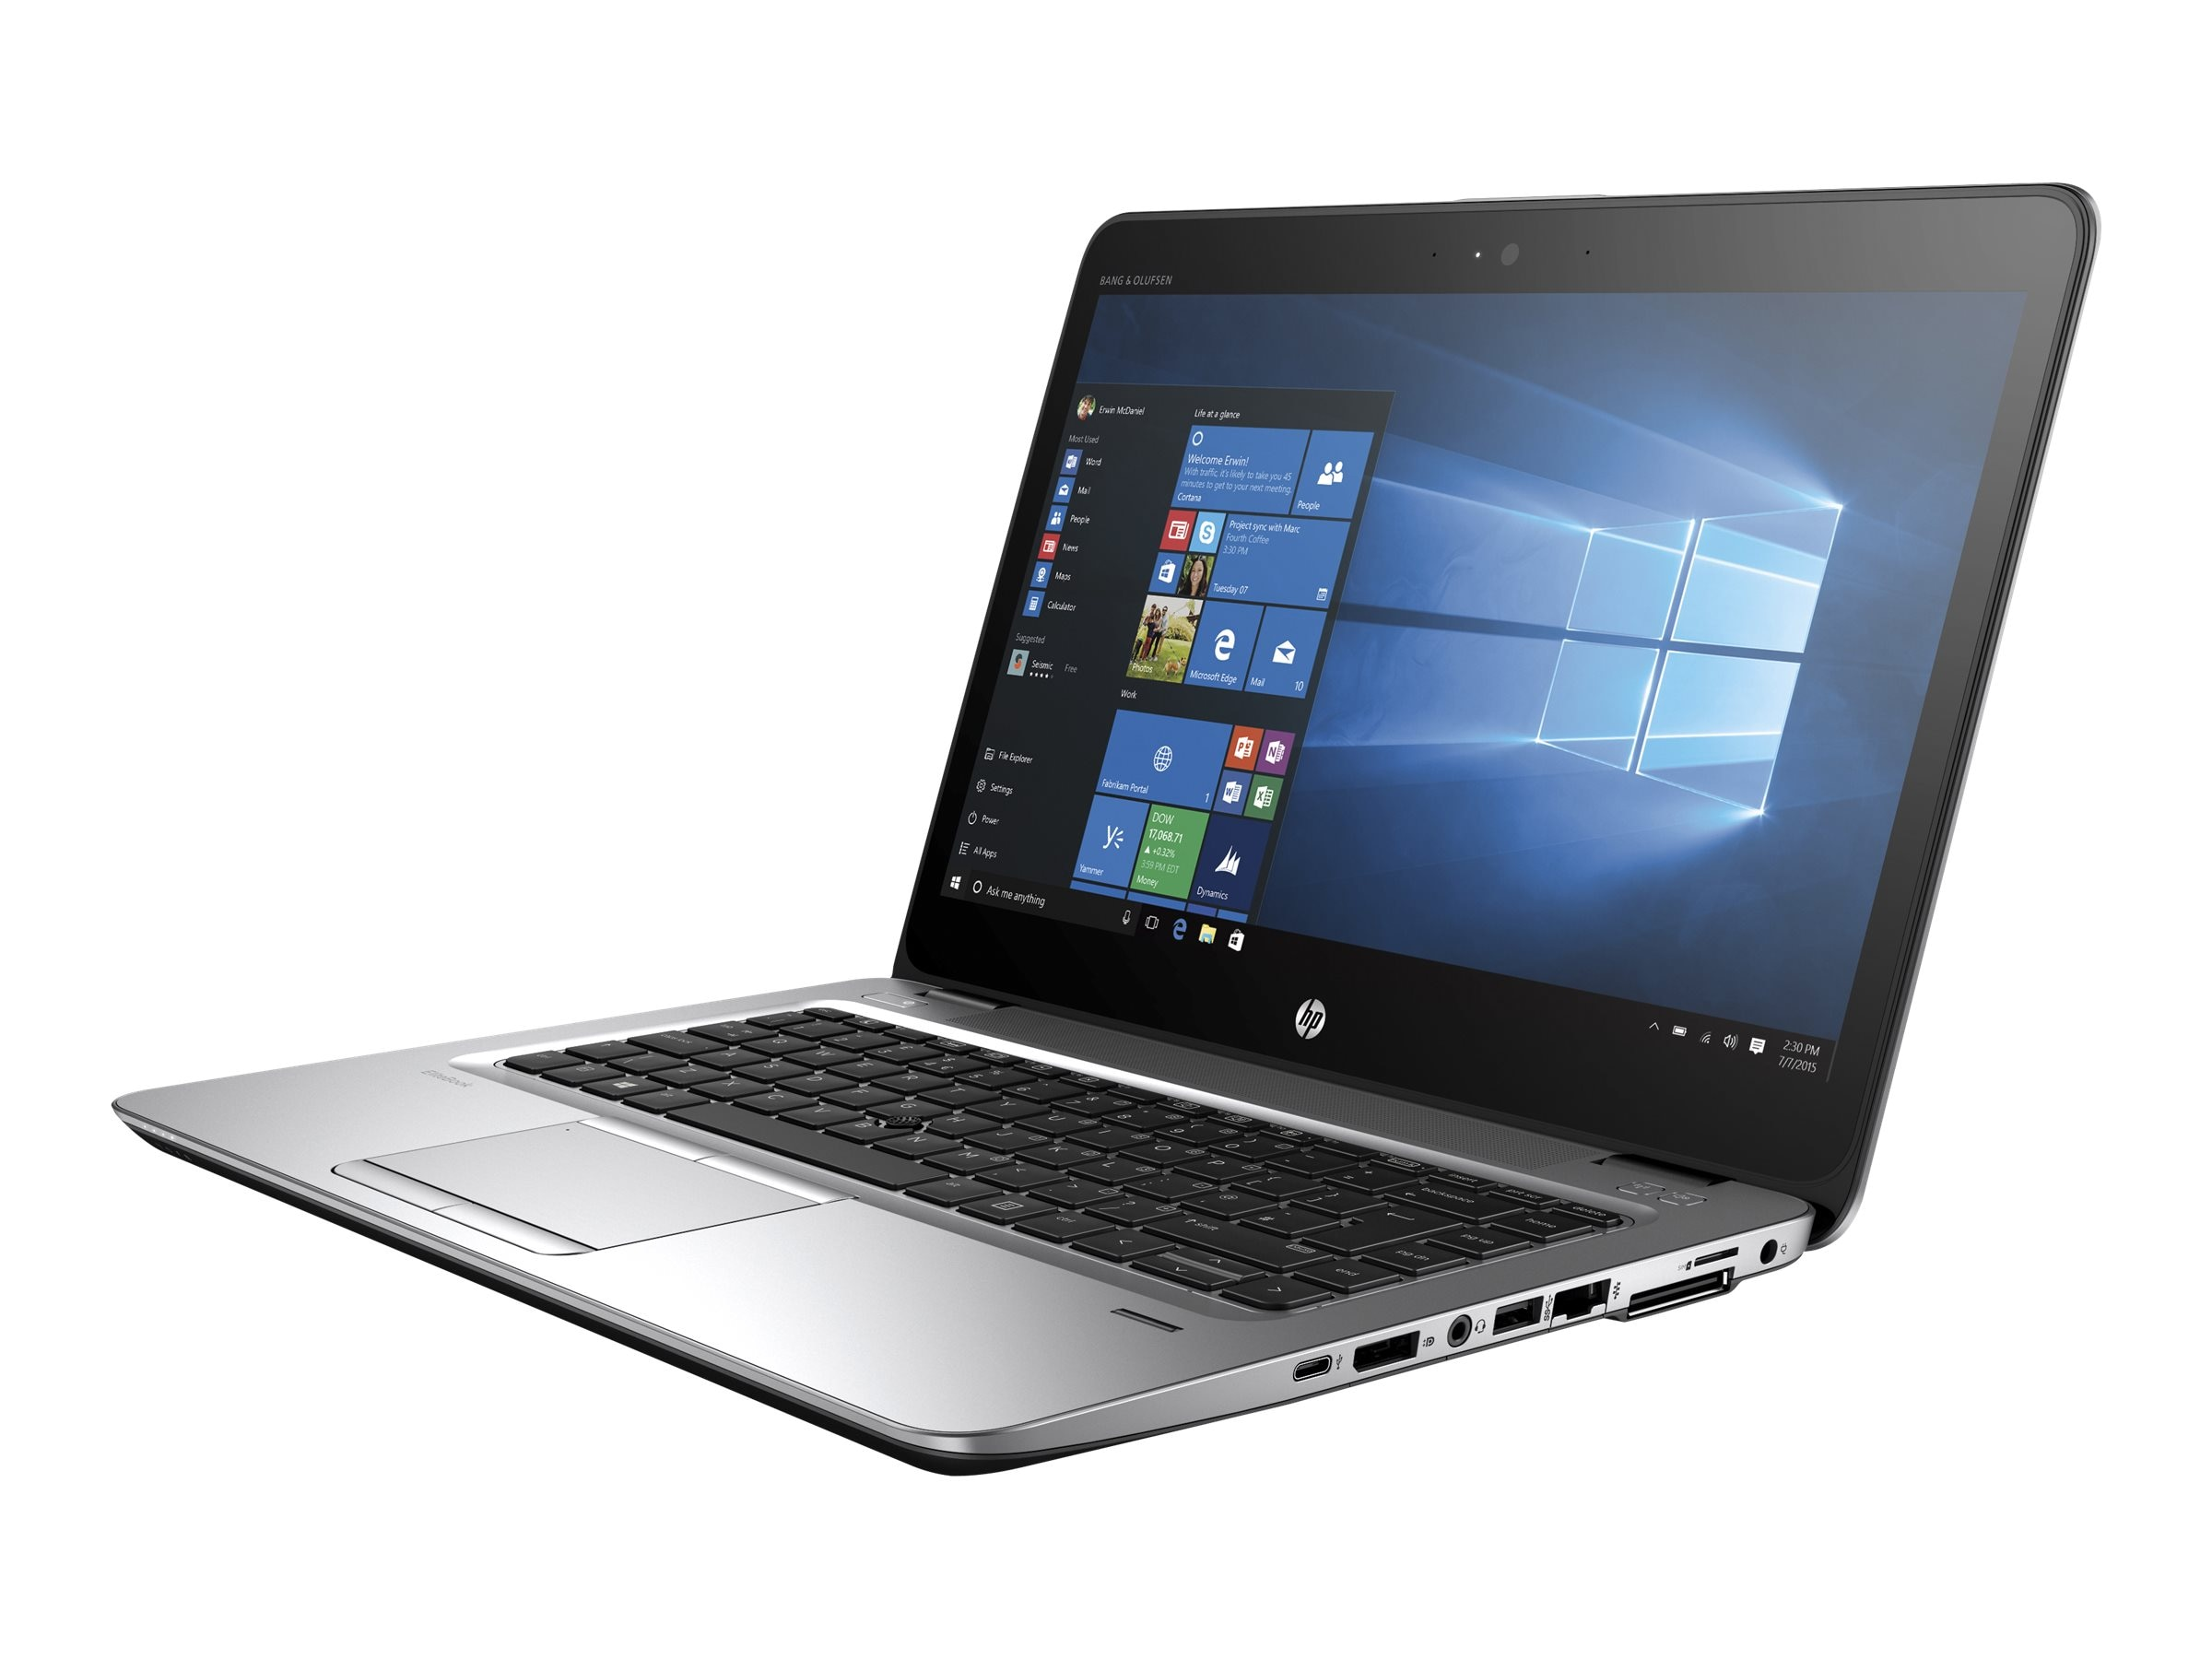 HP EliteBook 745 G3 1.6GHz A8 14in display